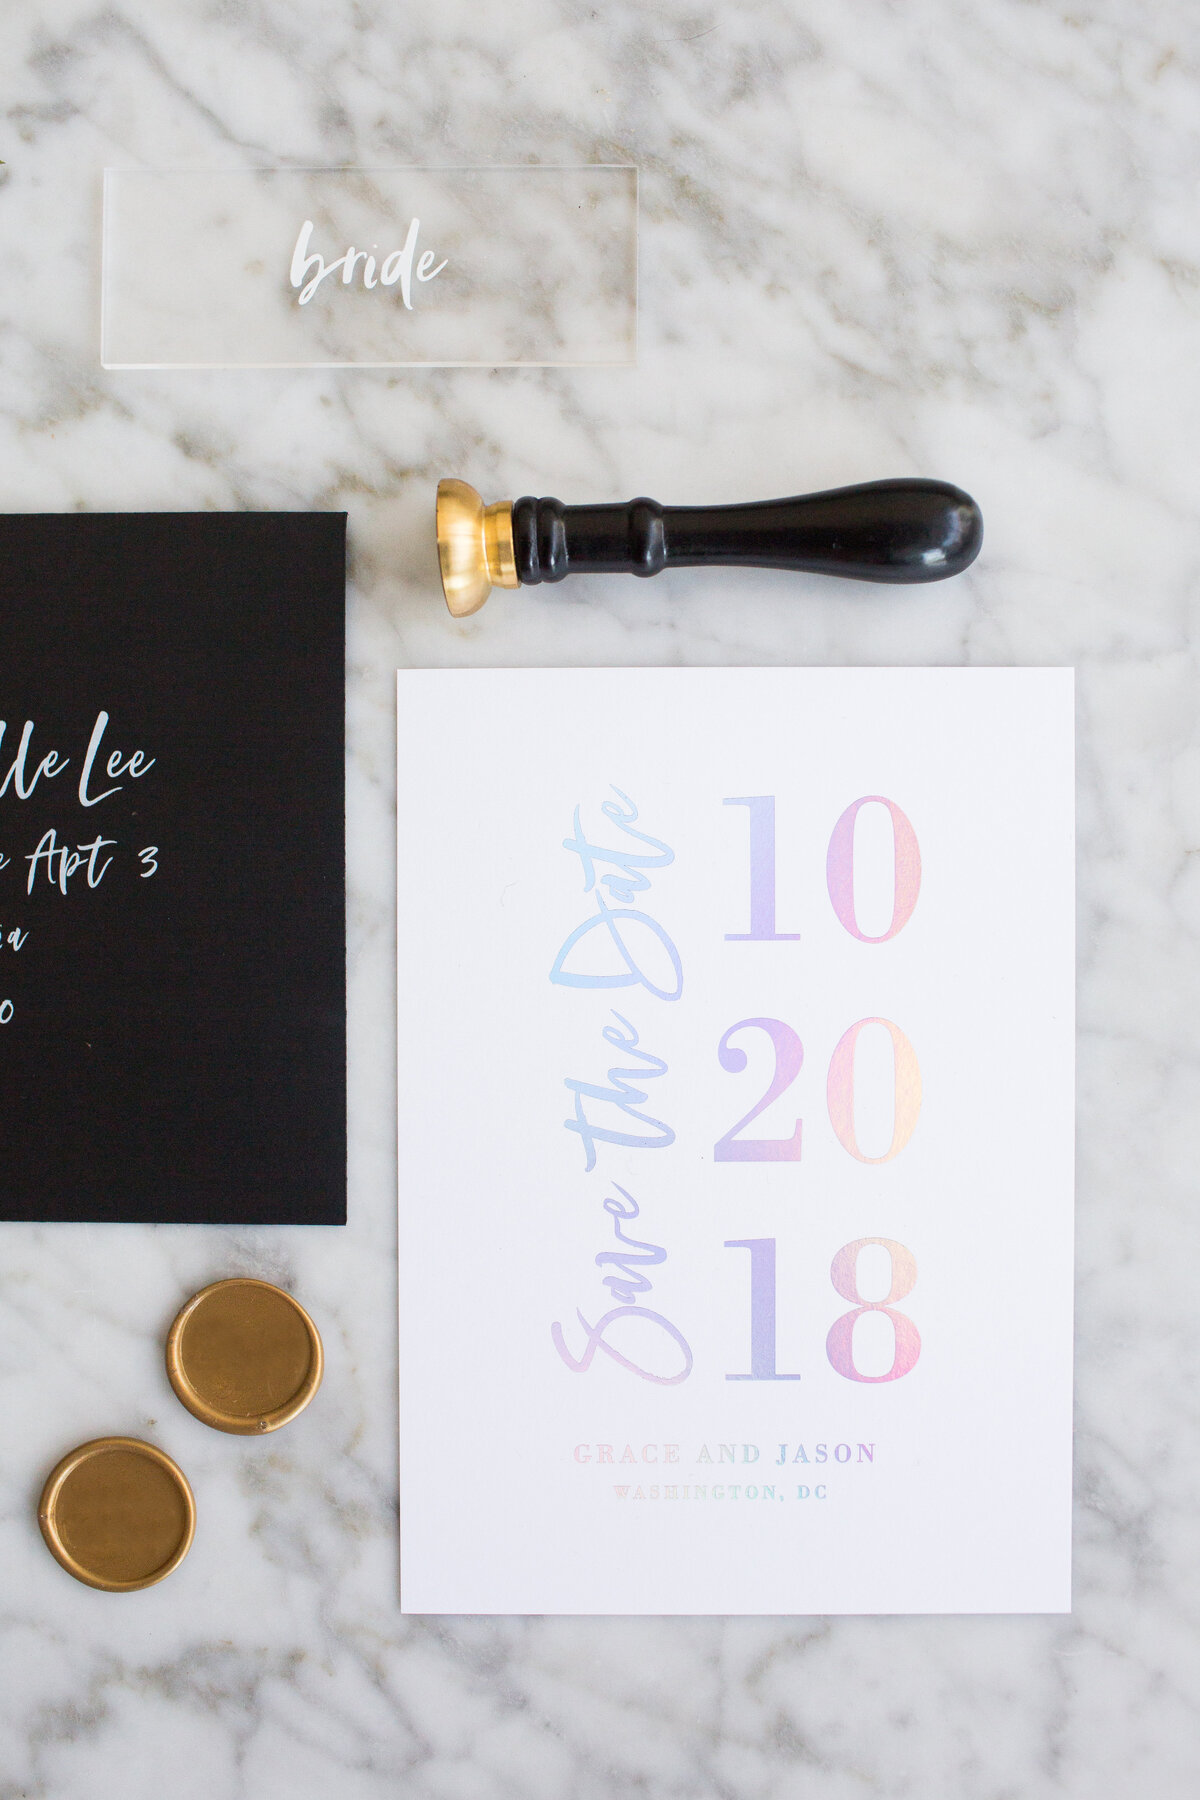 Bridget-Goldsmith-Holographic-Foil-Save-The-Date